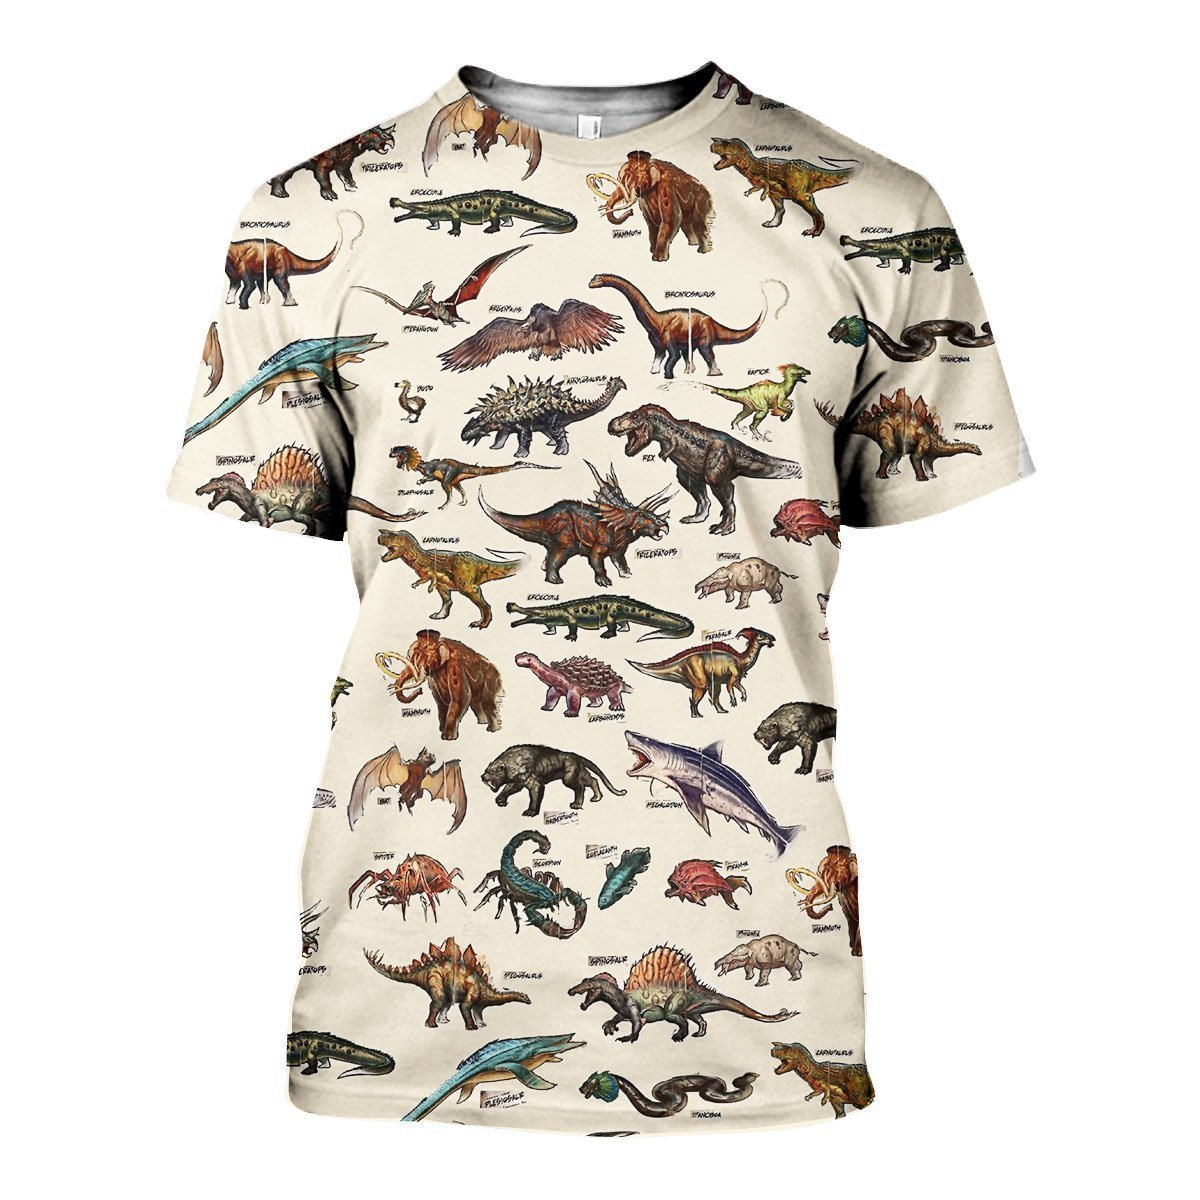 3D All Over Printed Dinosaur & Wildlife Of The Ark Shirts and Shorts - Amaze Style™